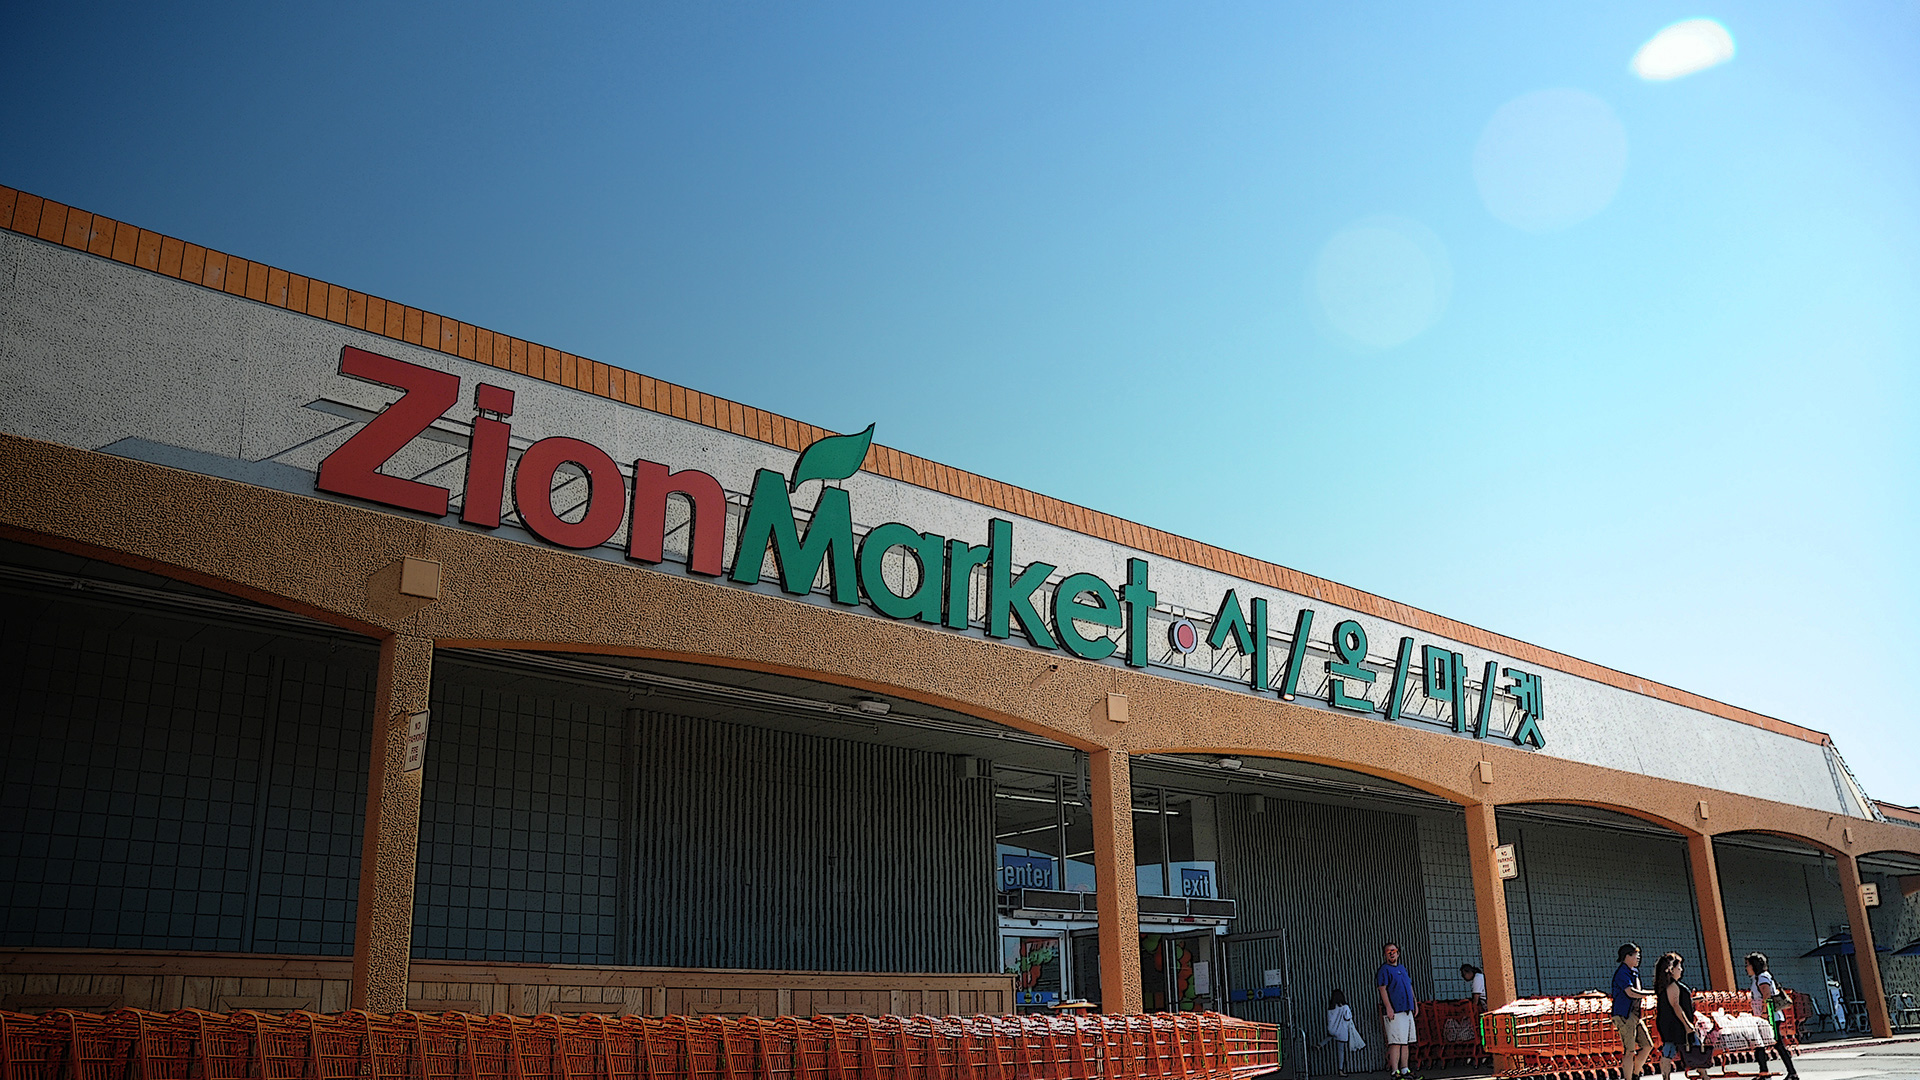 Zion Market Weekly Sale